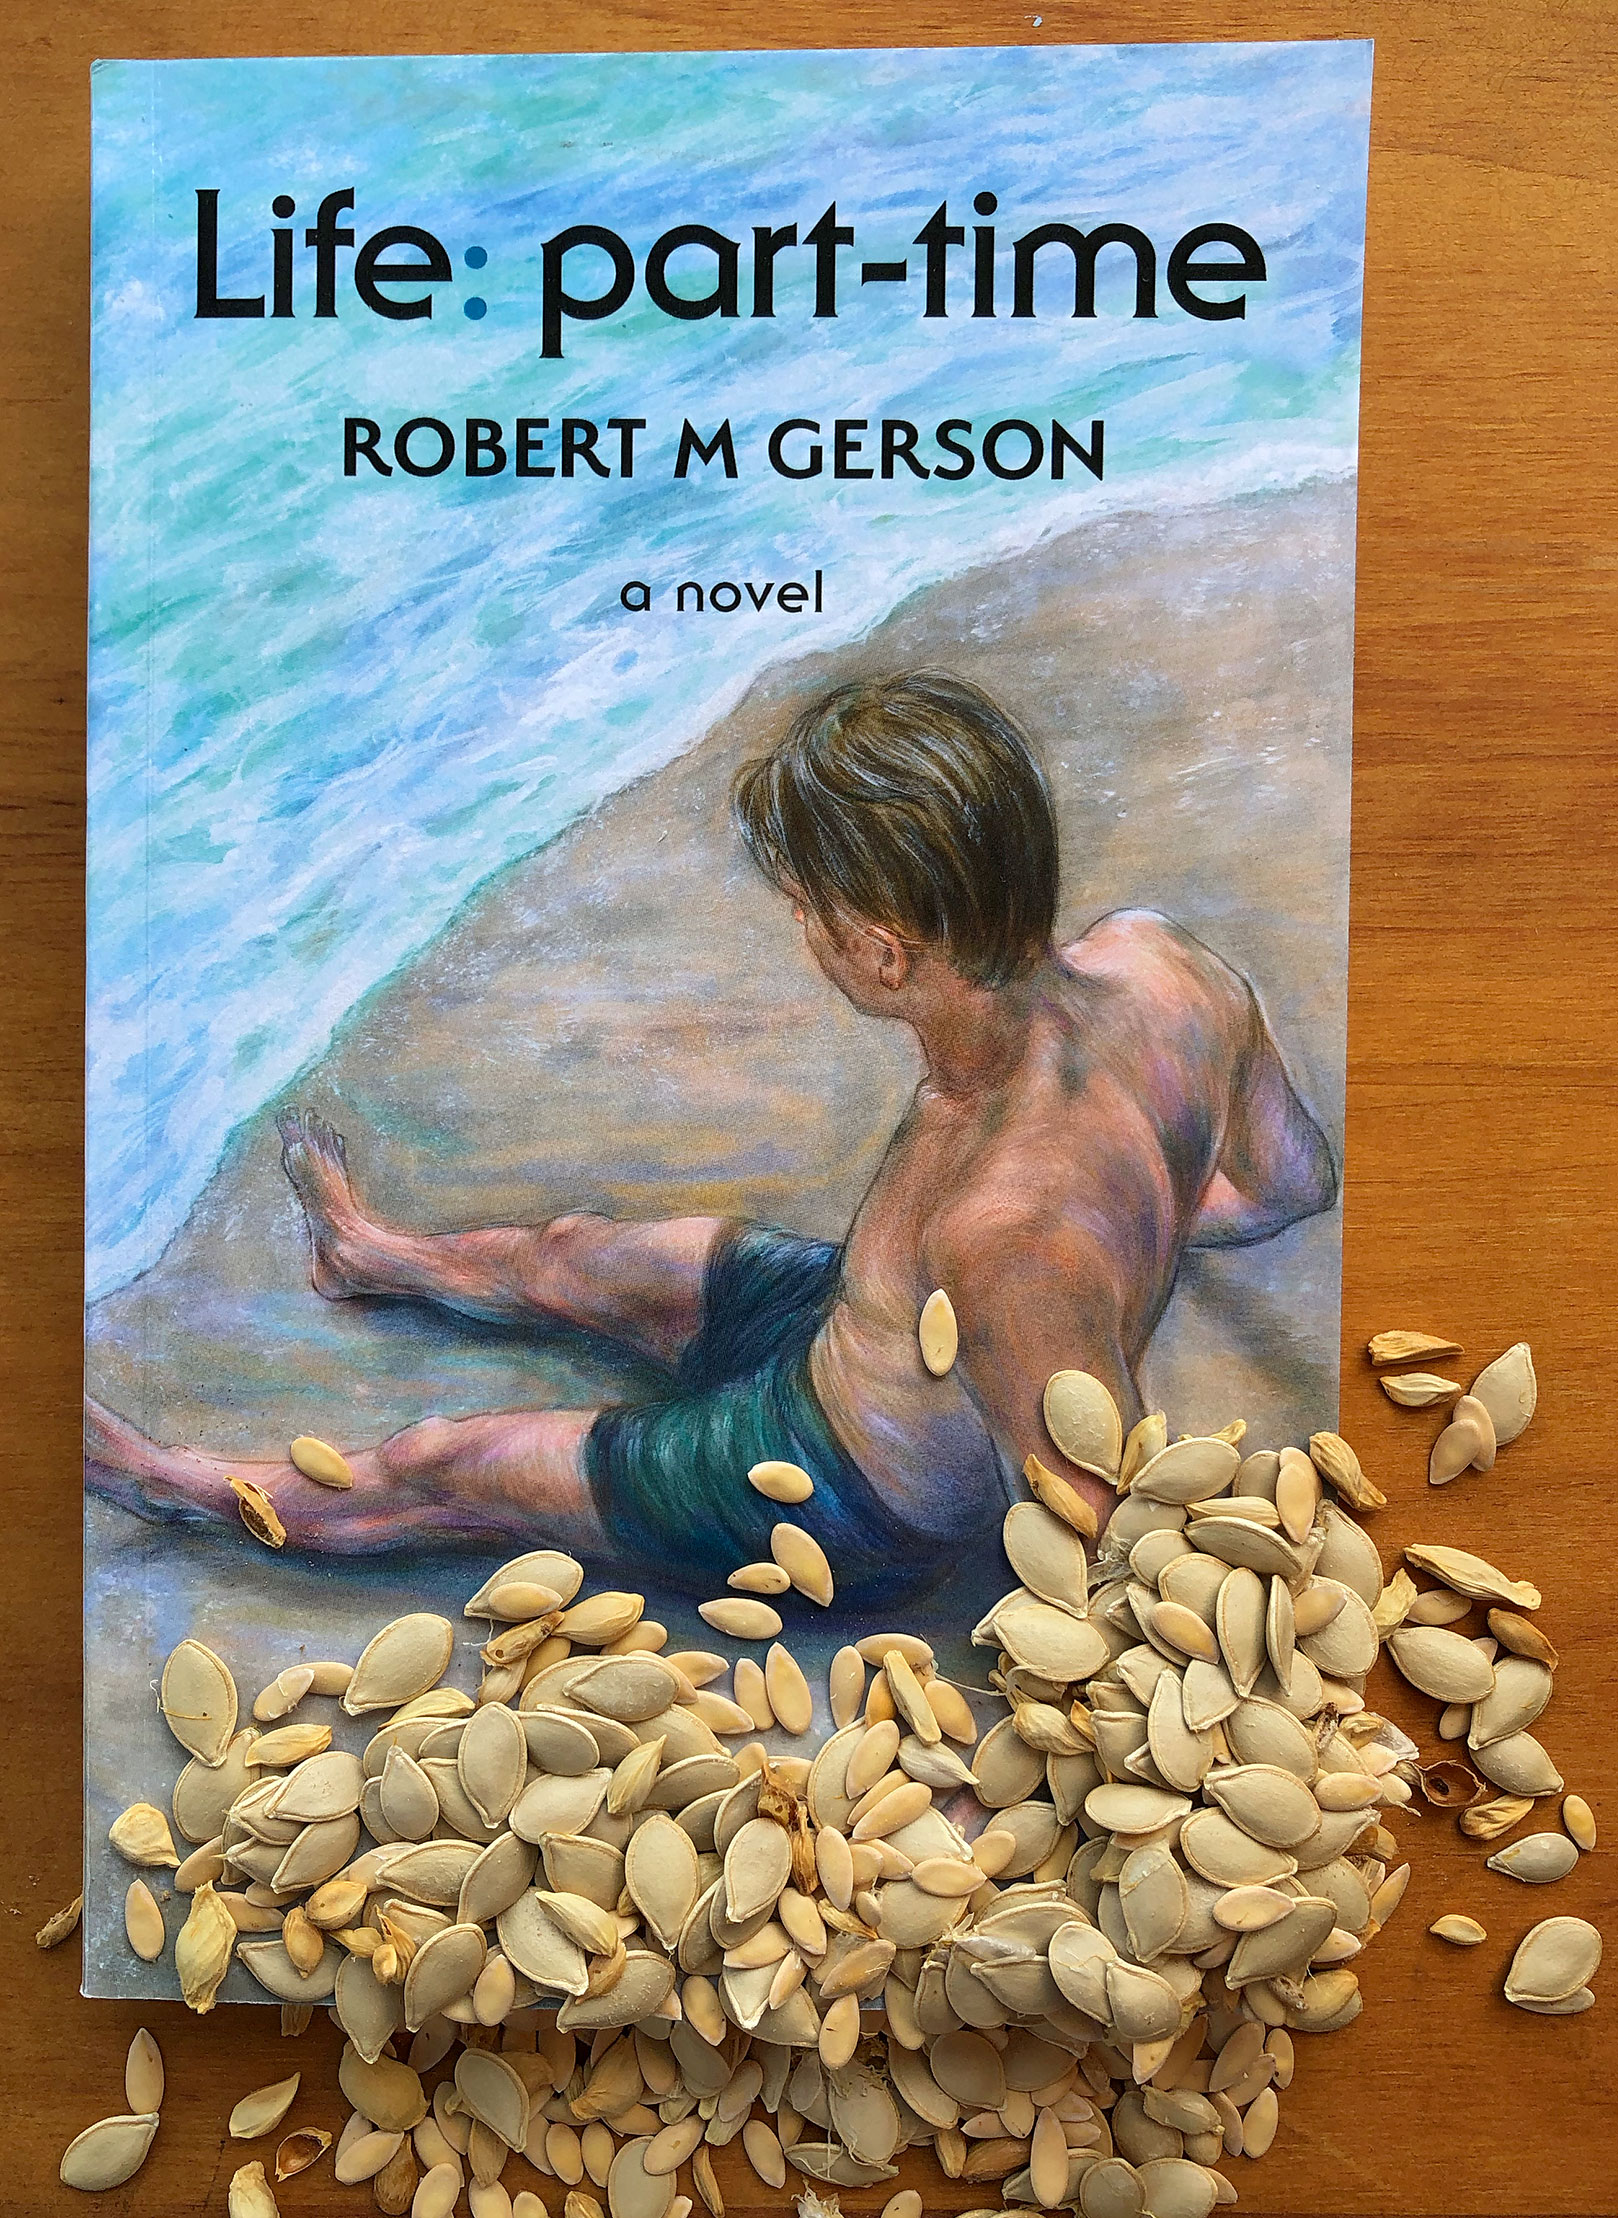 Seeds and the novel Life: part-time